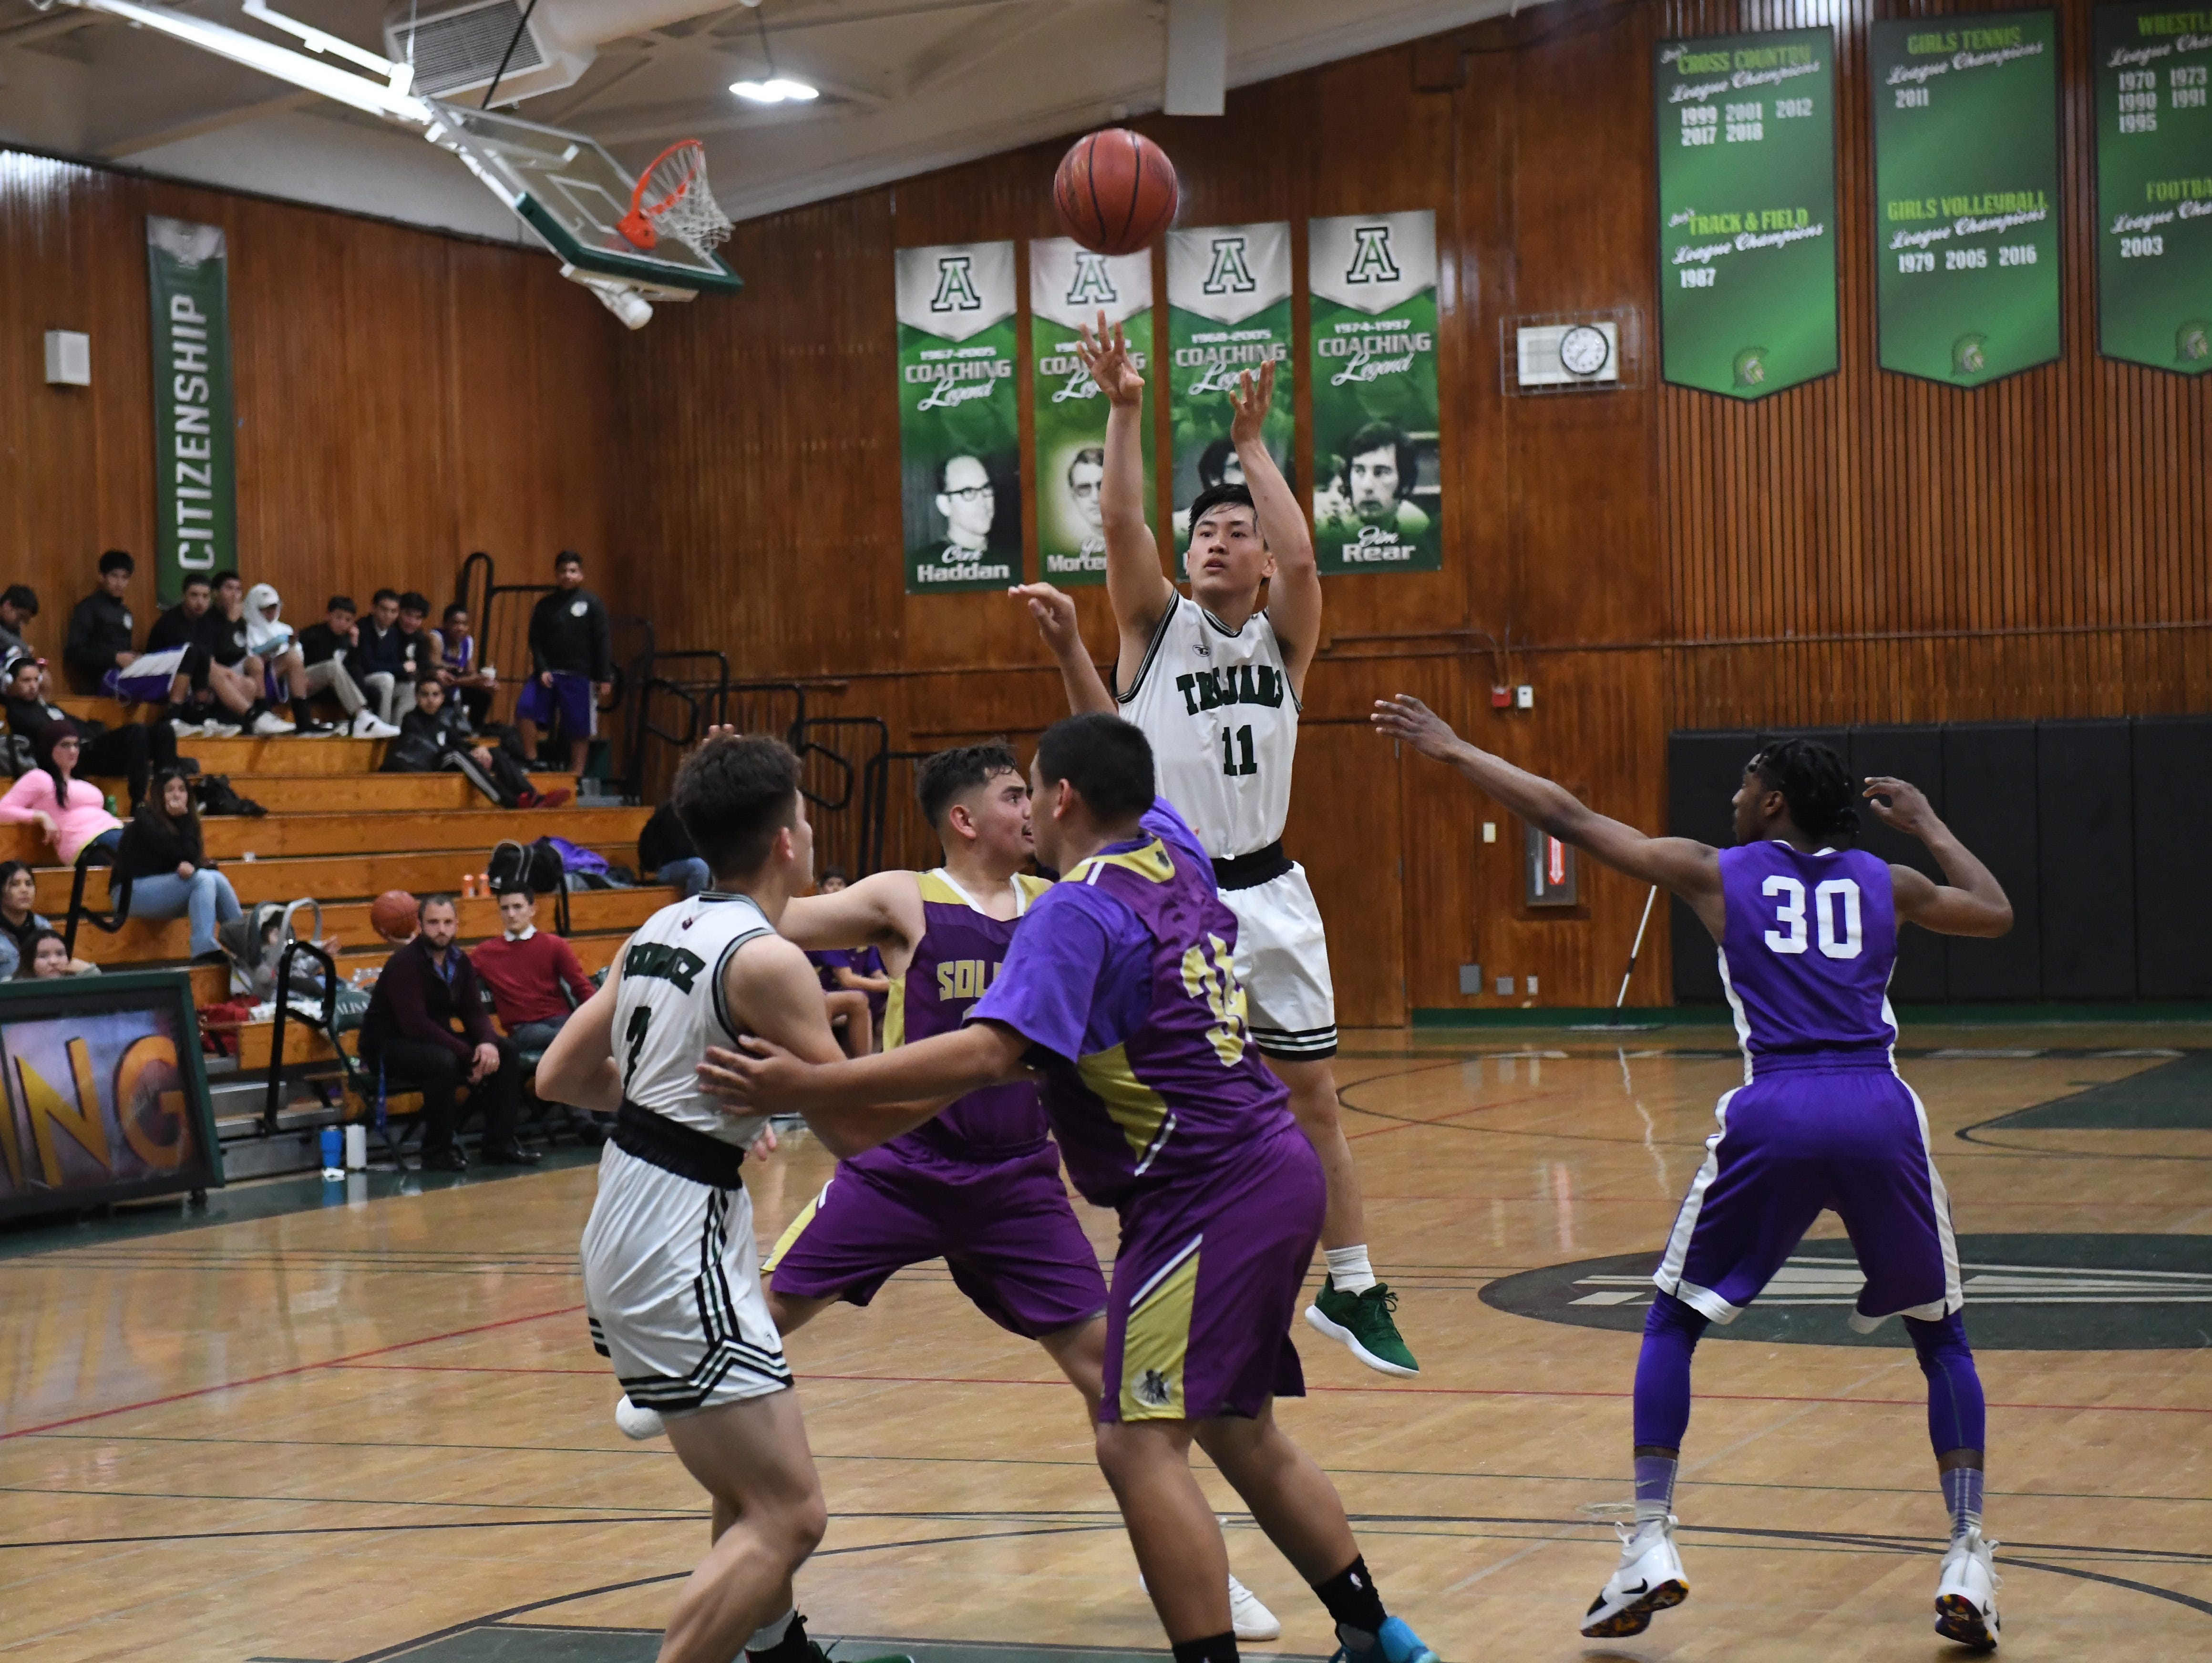 Alisal guard Joshua Vuoung (11) shoots a 3-pointer in the third quarter.